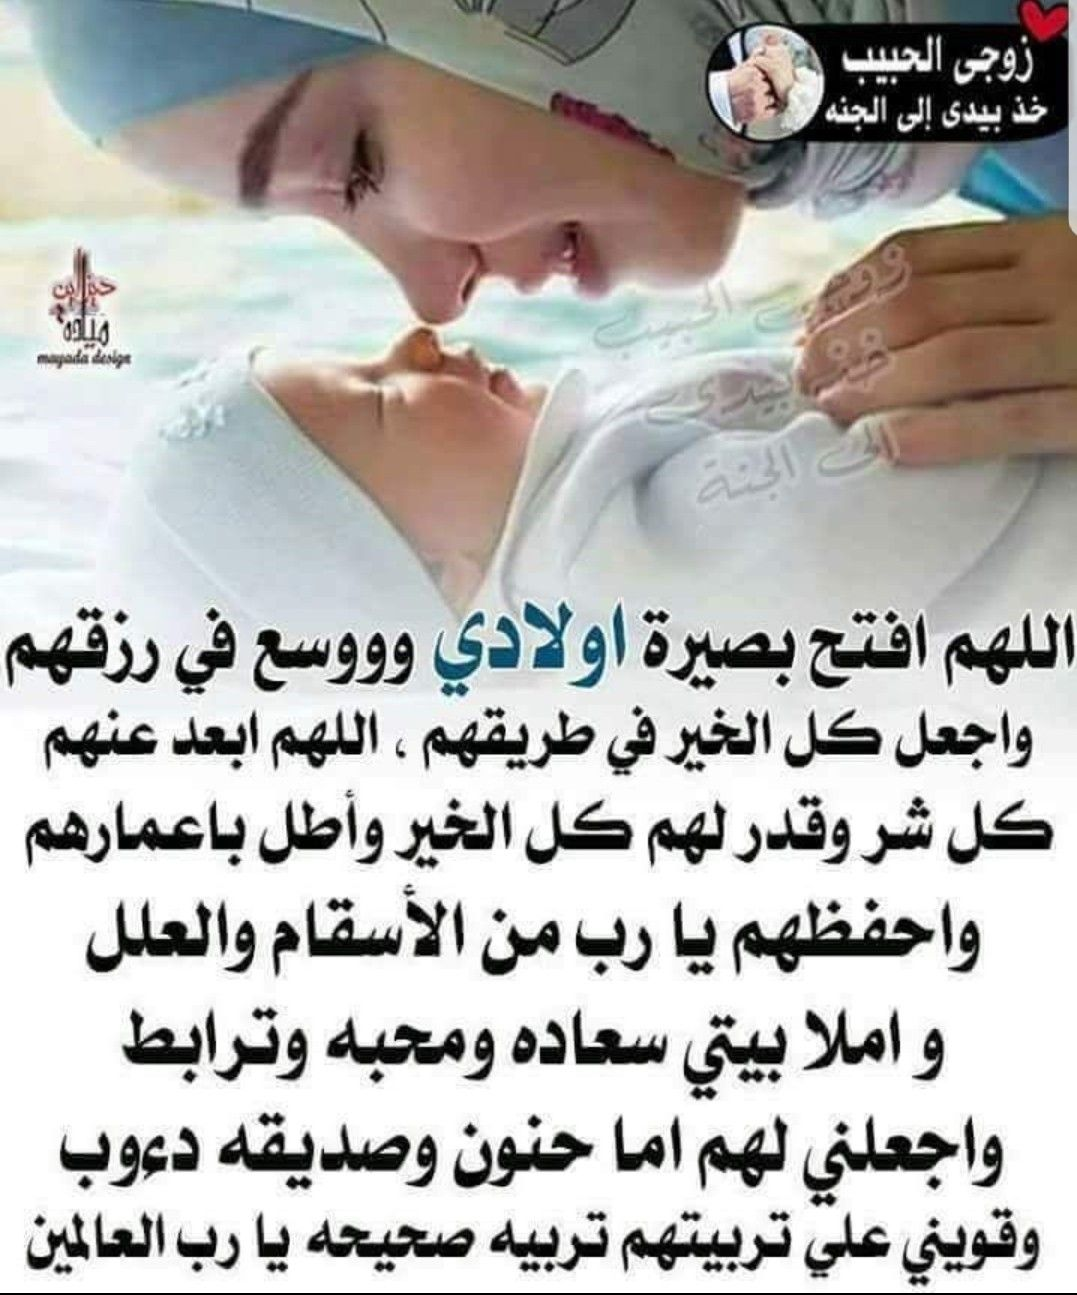 Pin By Bebo Ali On Prayers Islamic Love Quotes Islam Beliefs Islam Facts